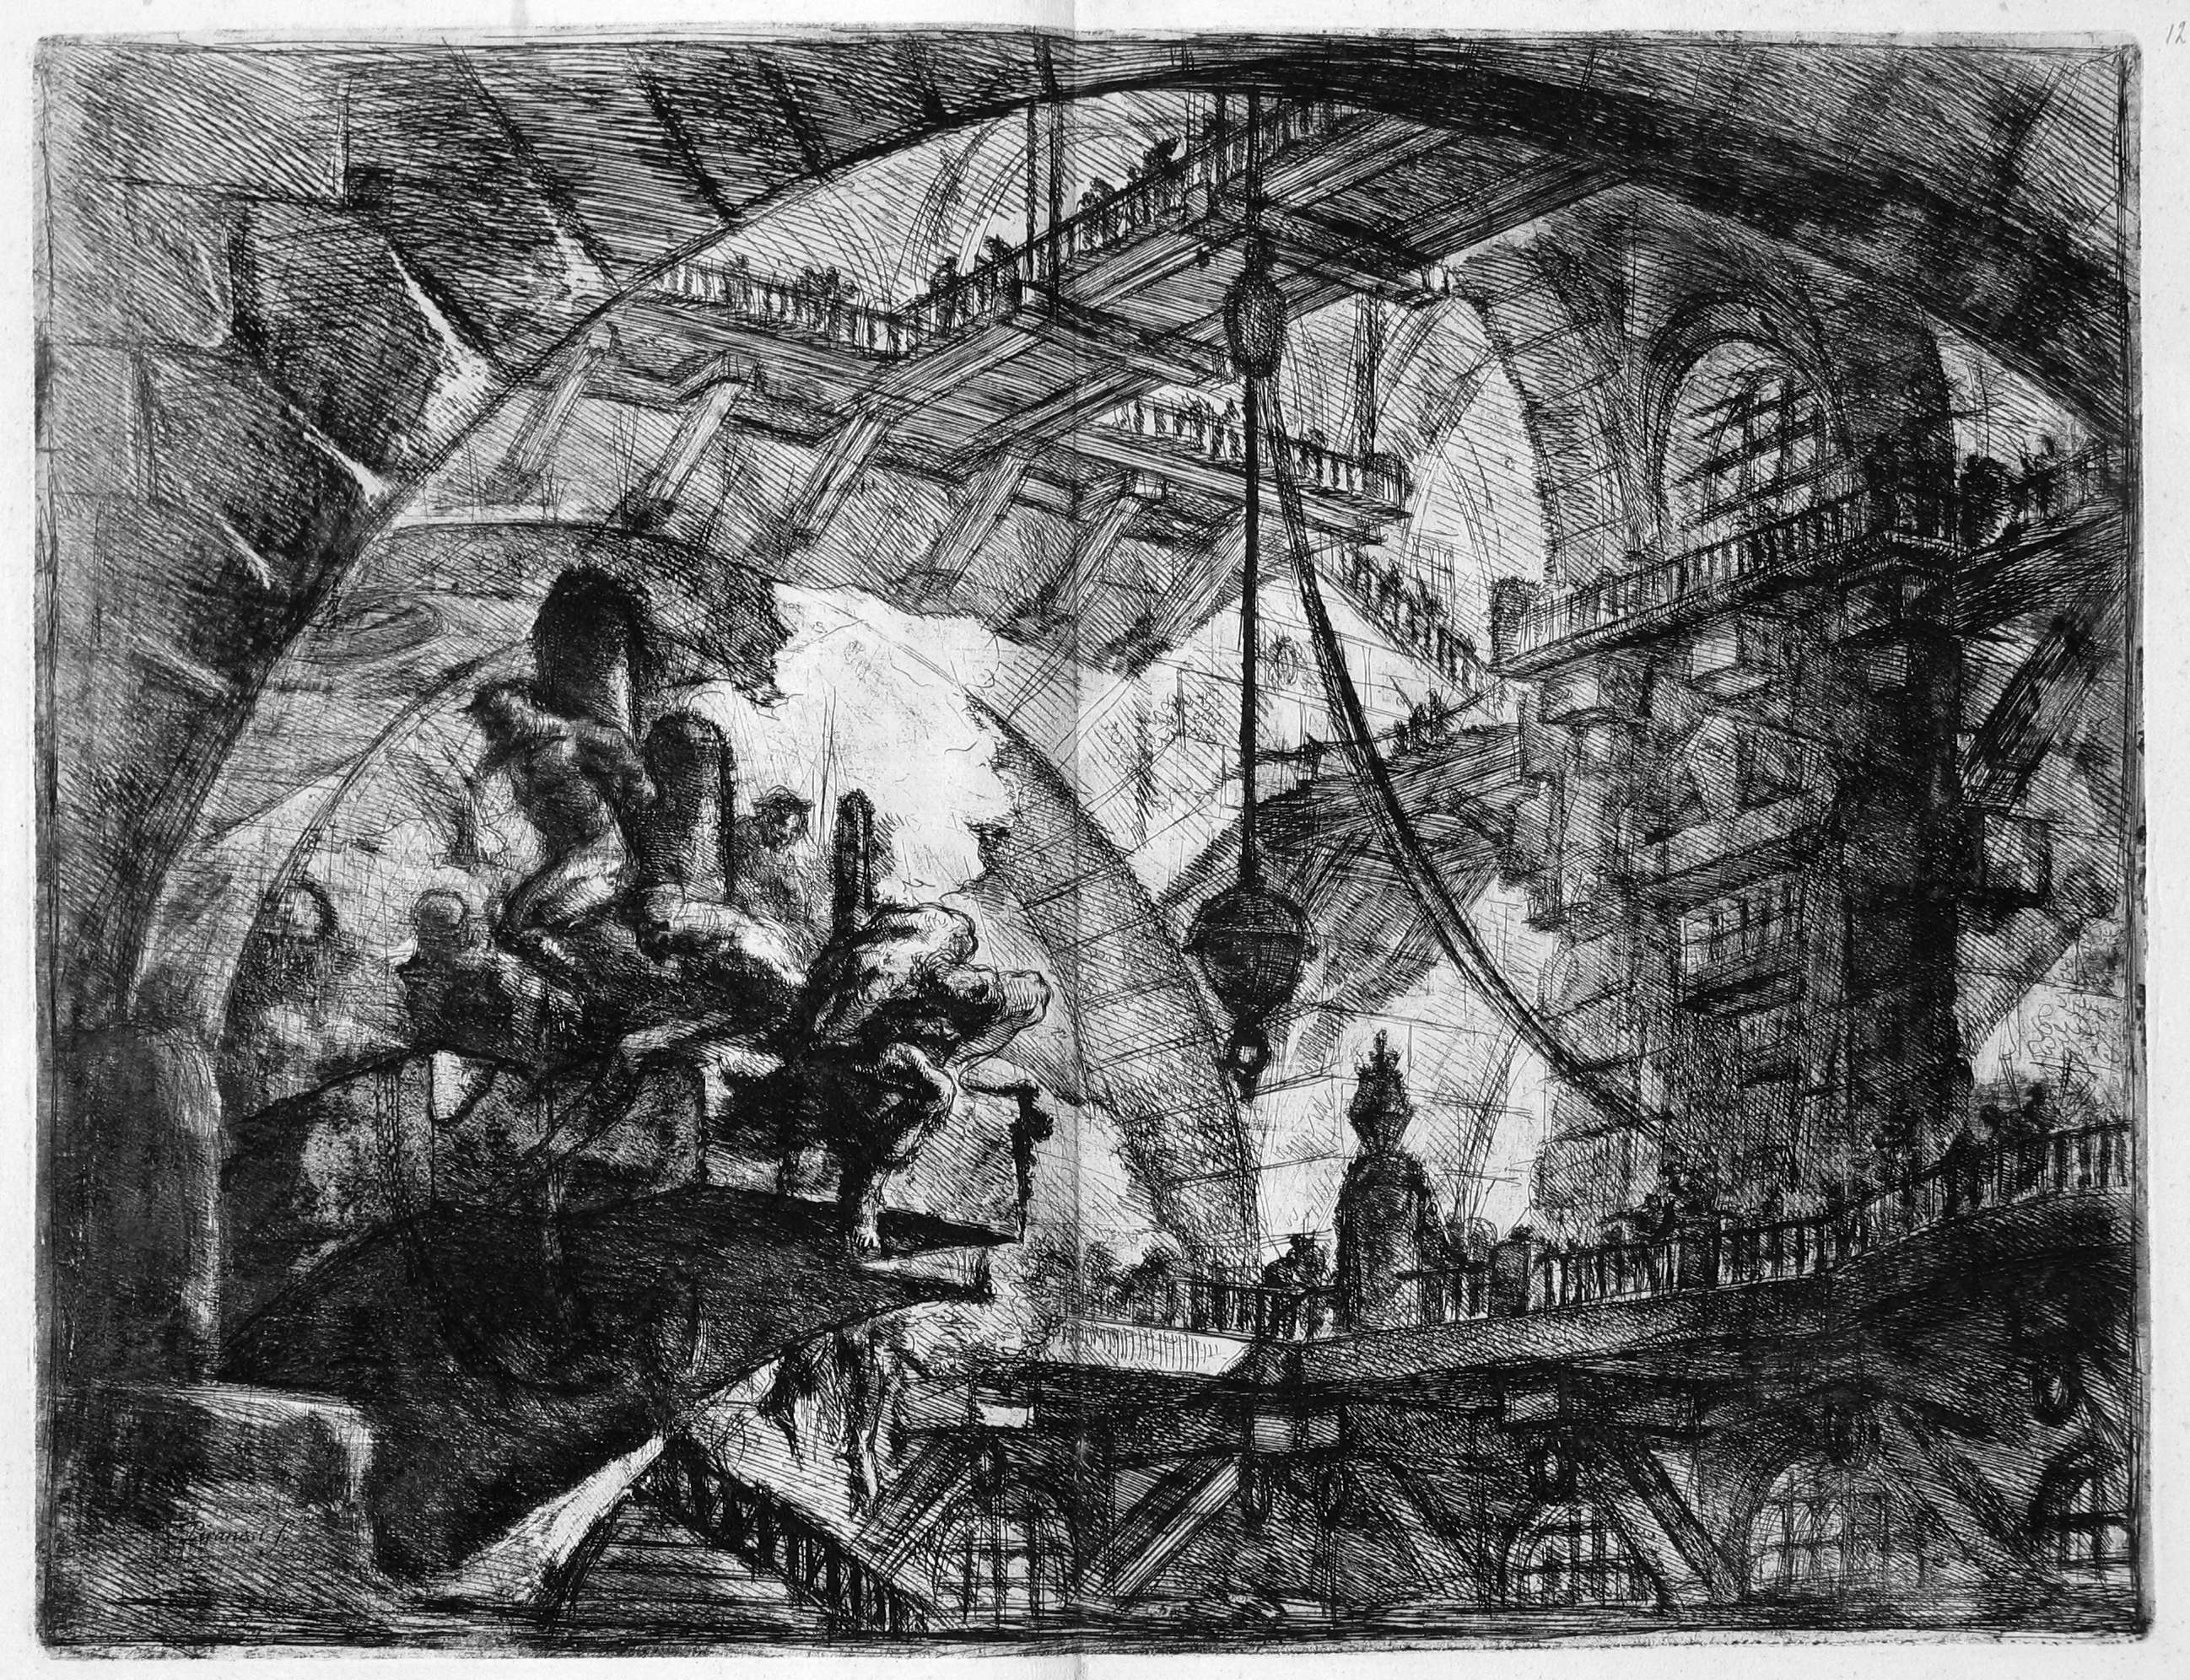 Piranesi Carceri d'Invenzione 08 The Staircase with Trophies